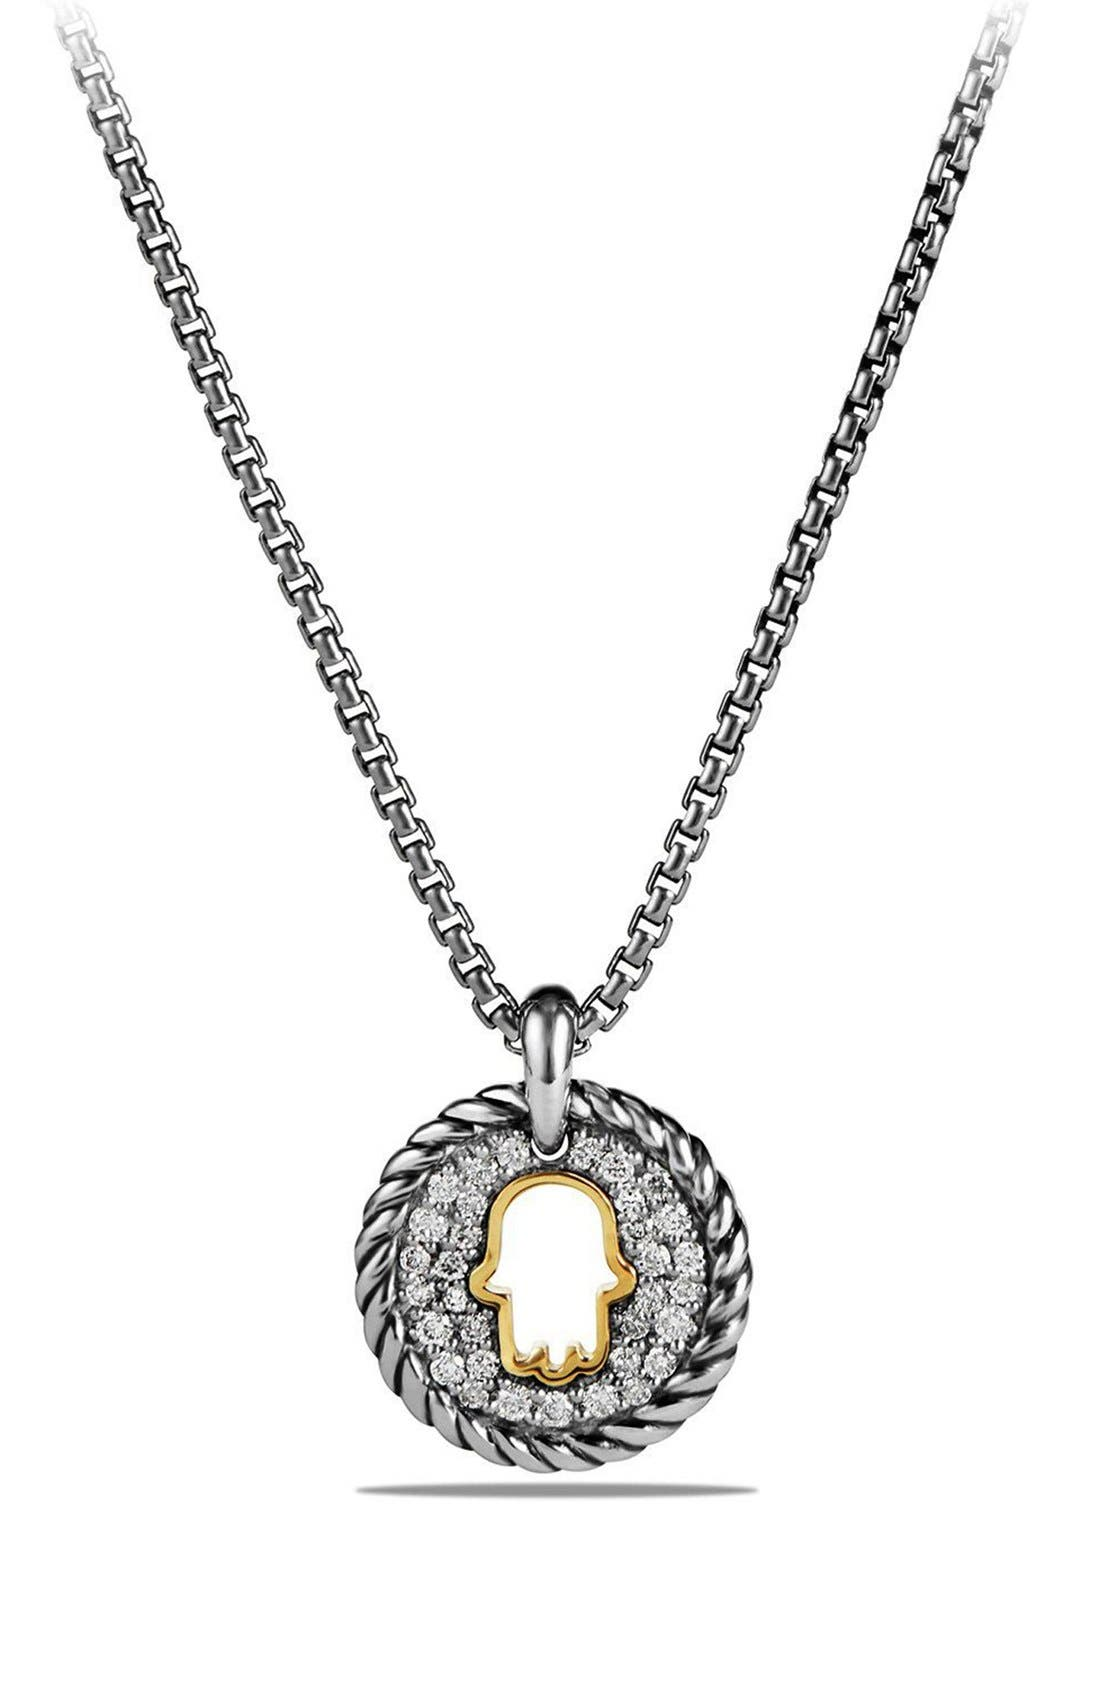 DAVID YURMAN Cable Collectibles Hamsa Charm Necklace with Diamonds & 18K Gold